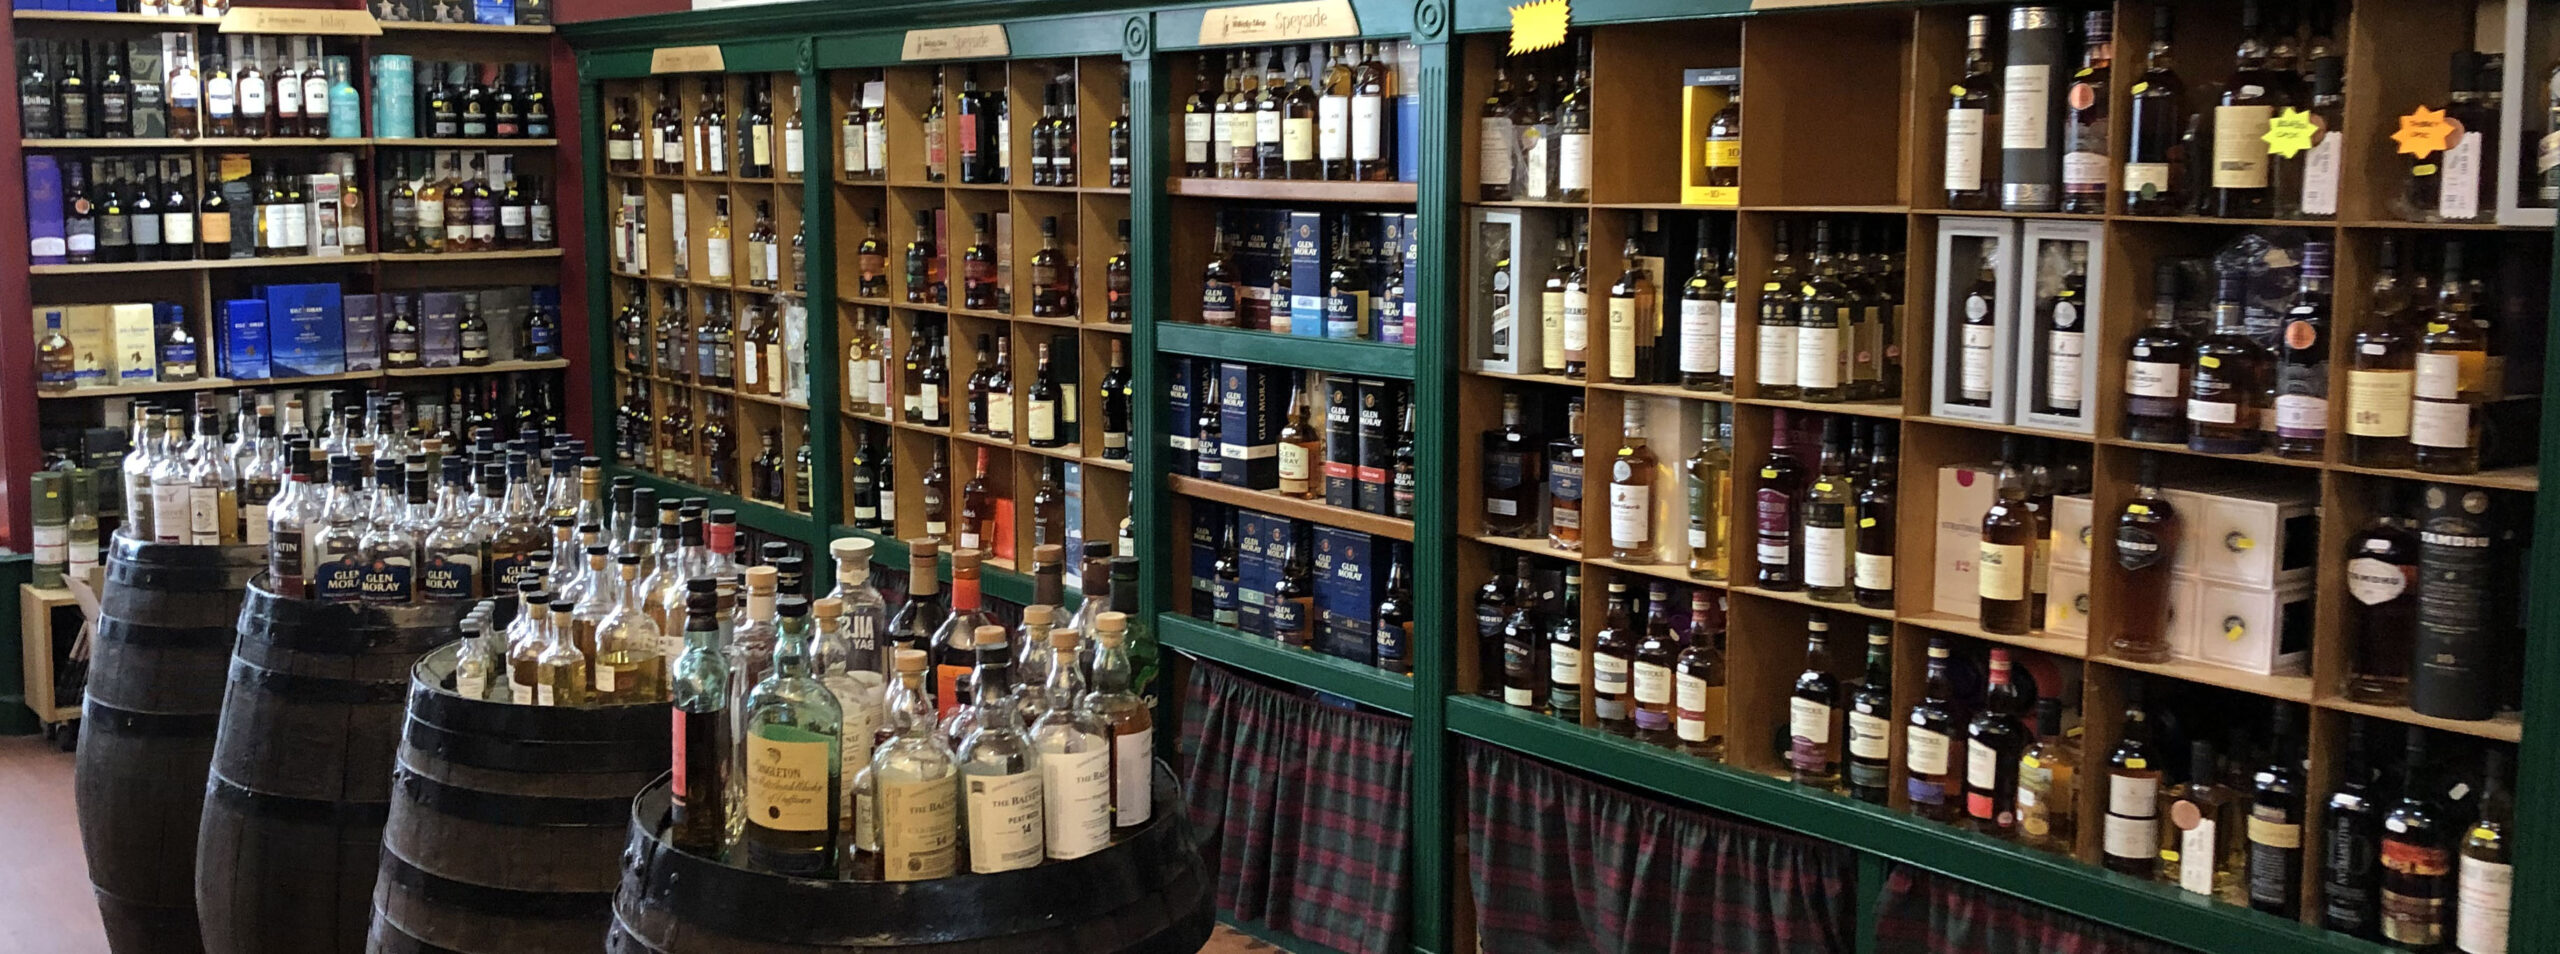 Inside the Whisky Shop Dufftown